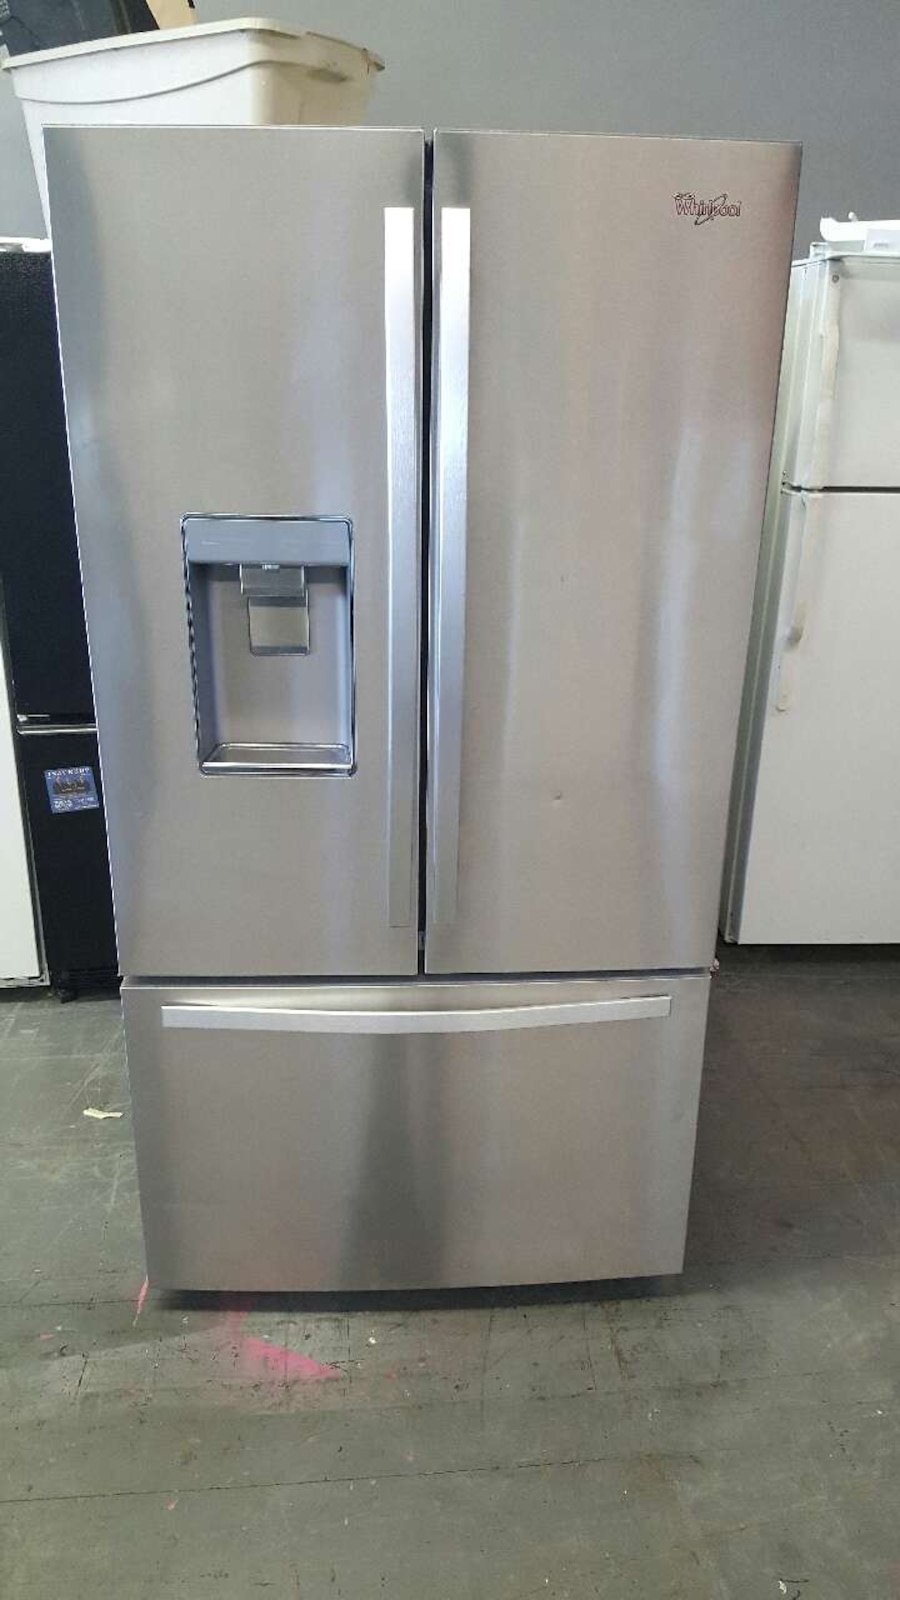 Used Whirlpool Stainless Steel French Door Refrigerator In